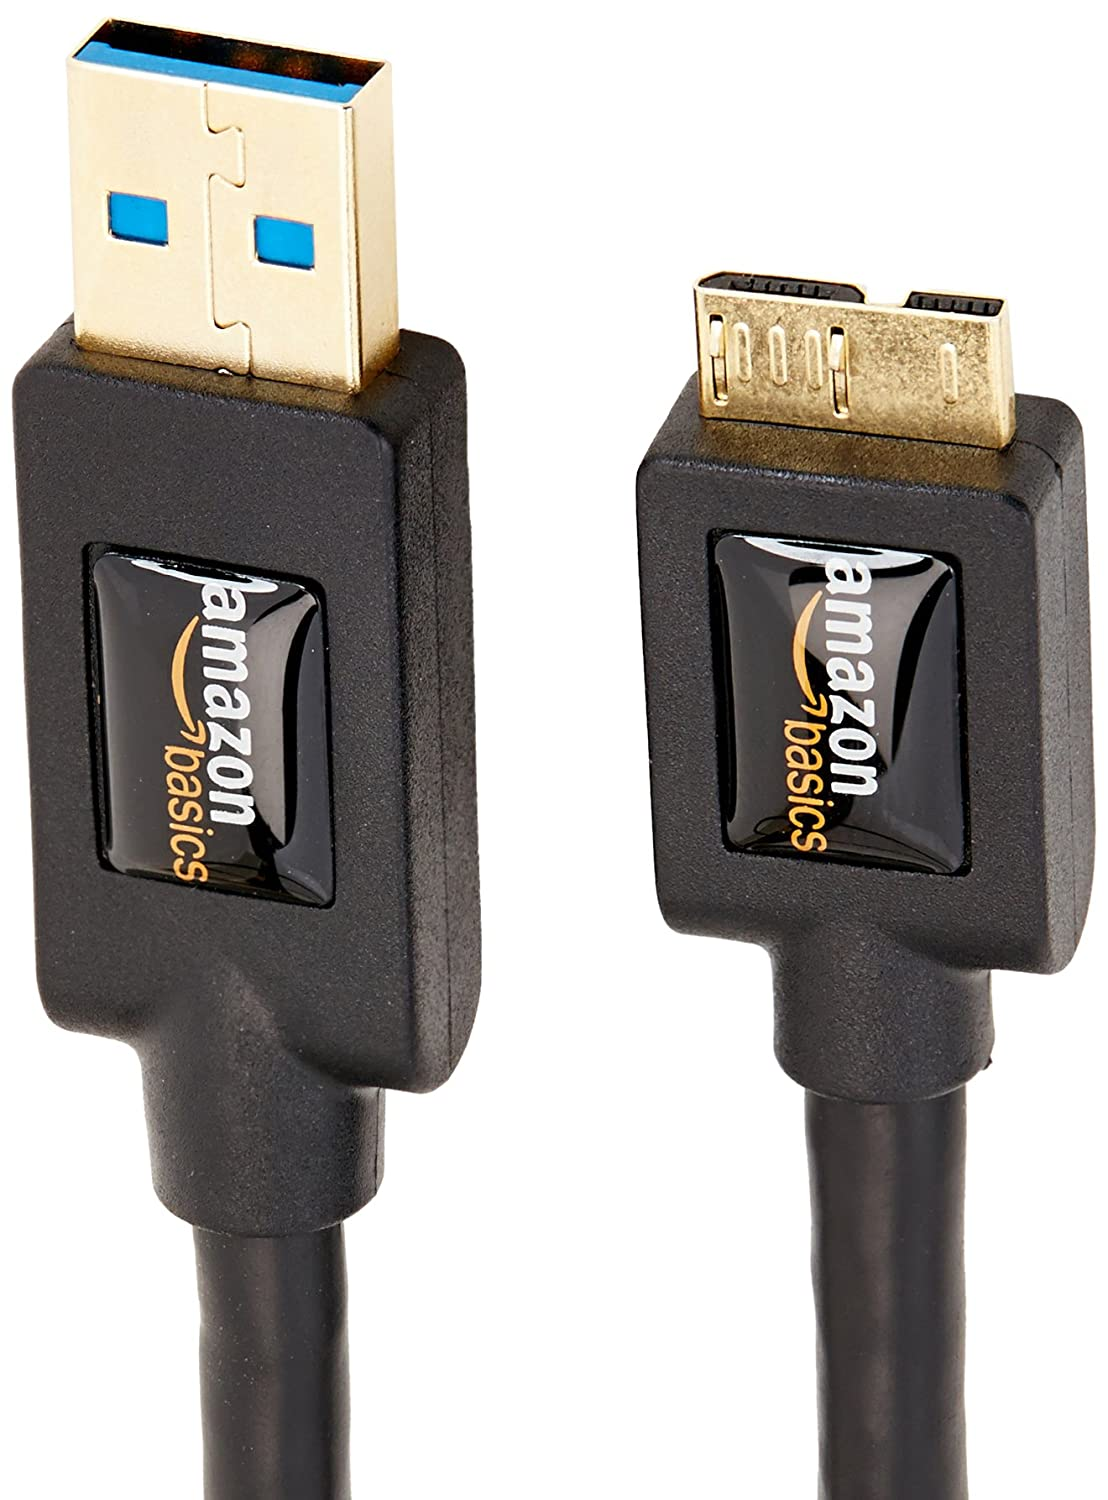 Amazonbasics Usb 30 Cable A Male To Micro B 3 Feet 09 Meters Connector Pinout Diagram Besides Security Camera Wiring Black Electronics